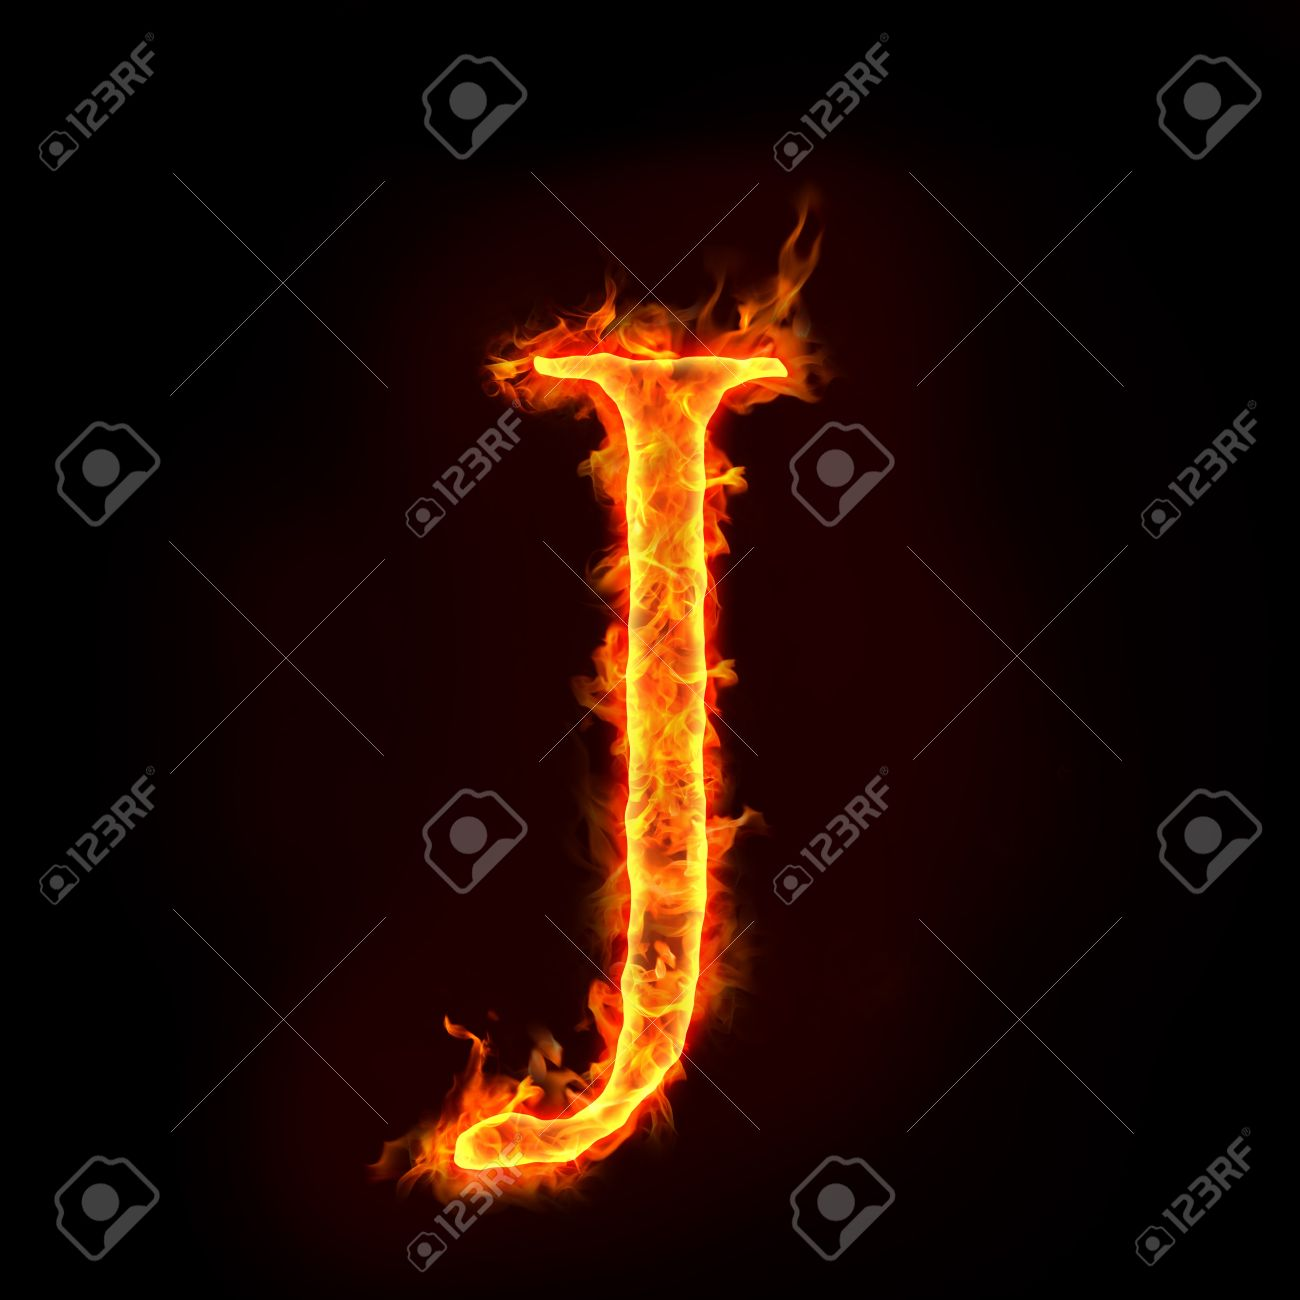 fire alphabets in flame, letter J Stock Photo - 10232875